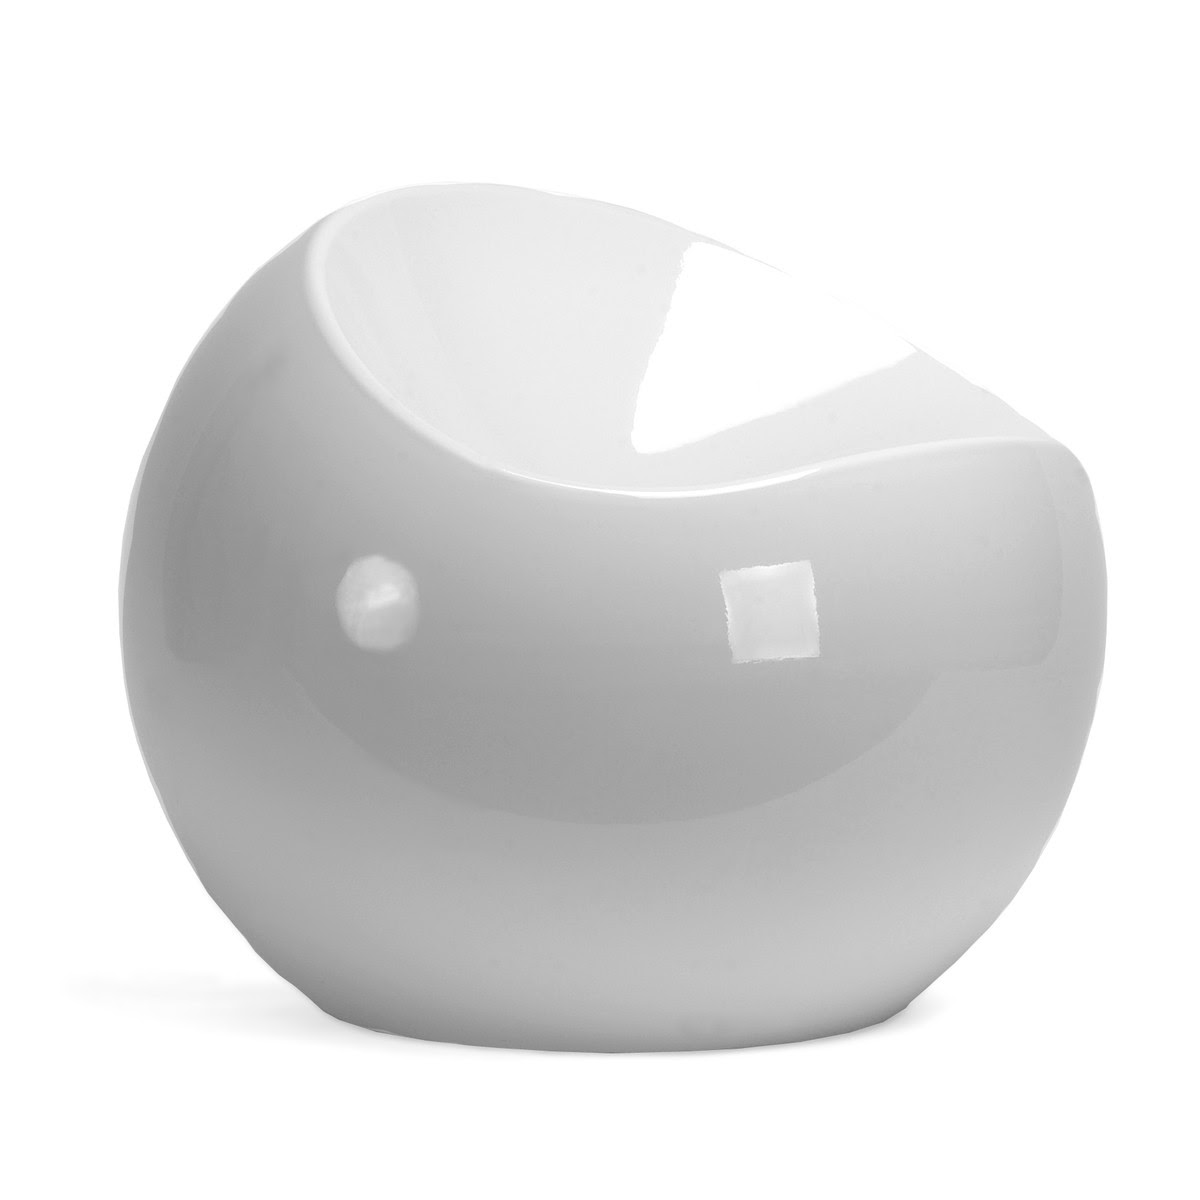 Replica Finn Stone Ball Chair white